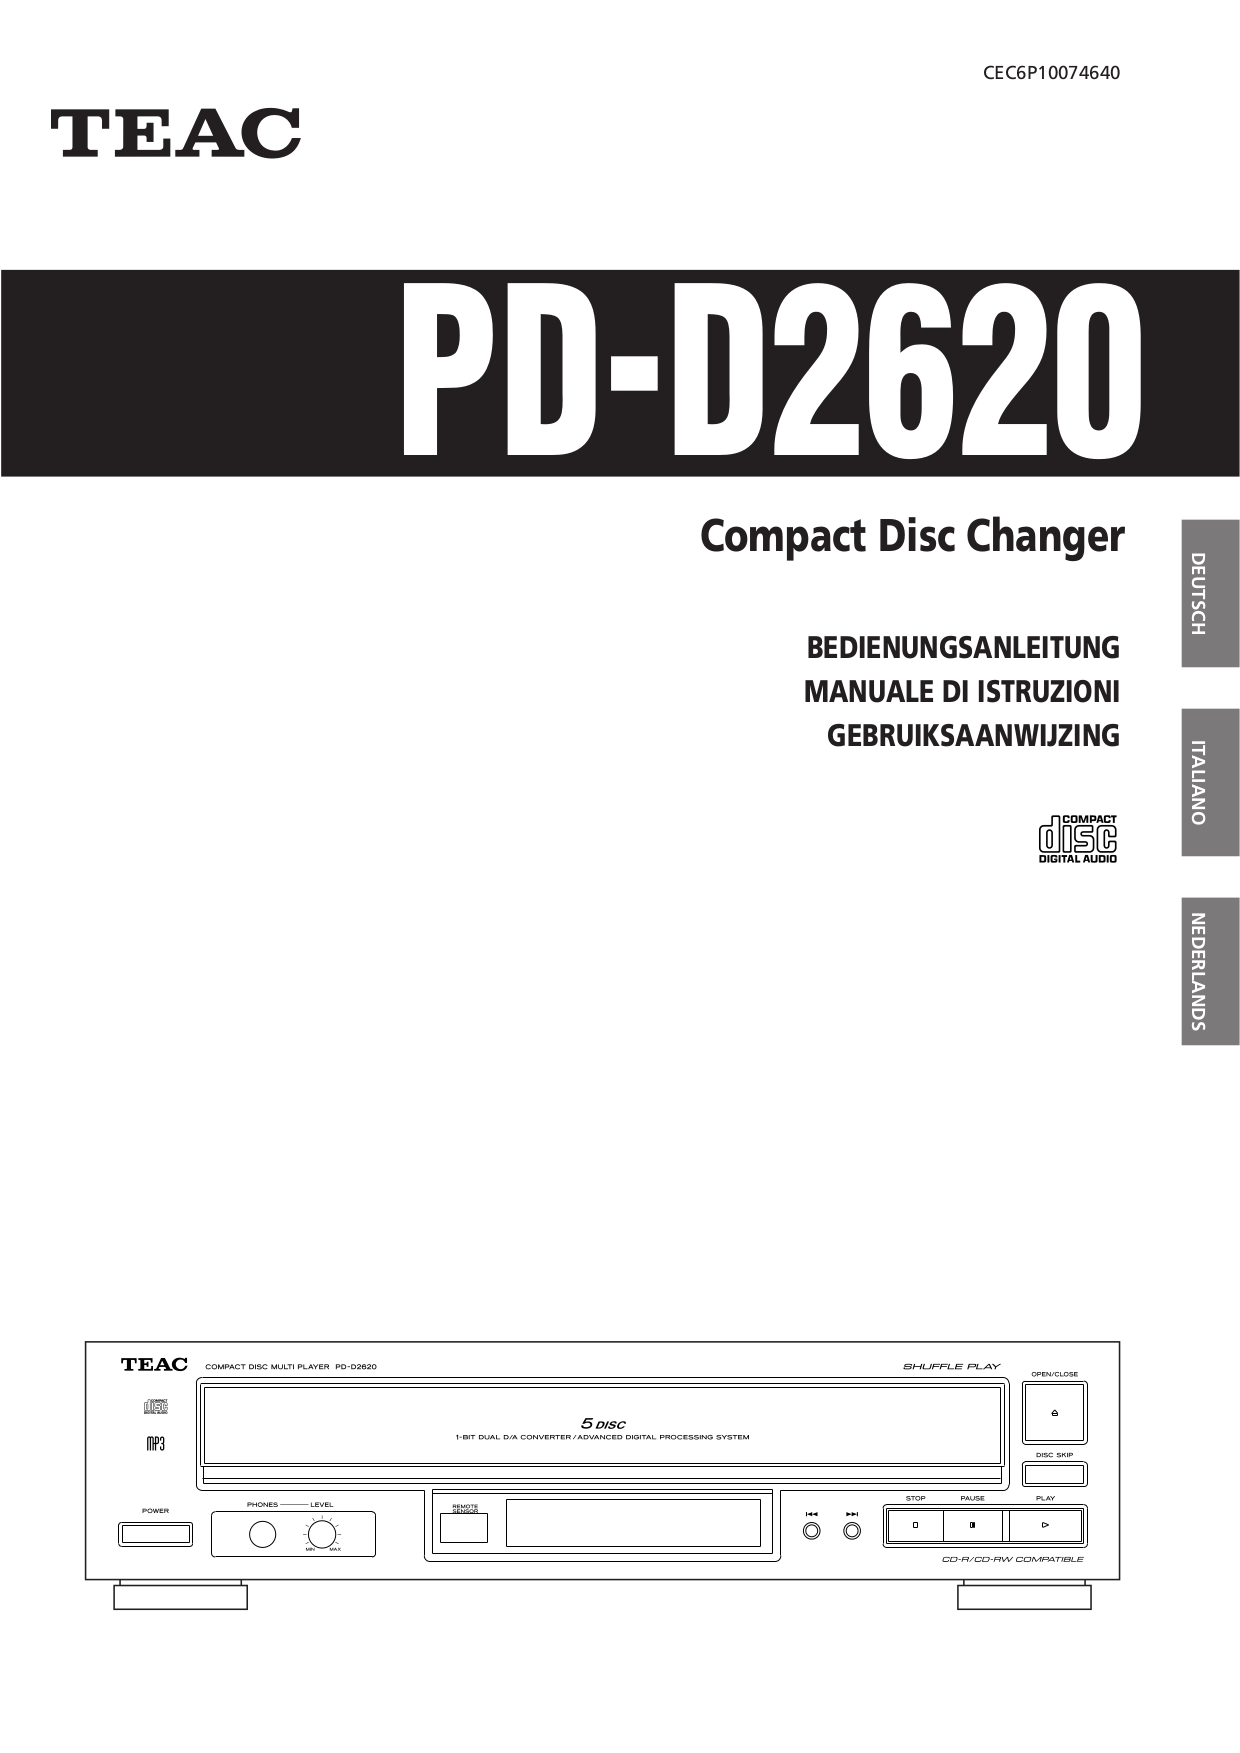 Download free pdf for Teac PD-D2610 CD Player manual